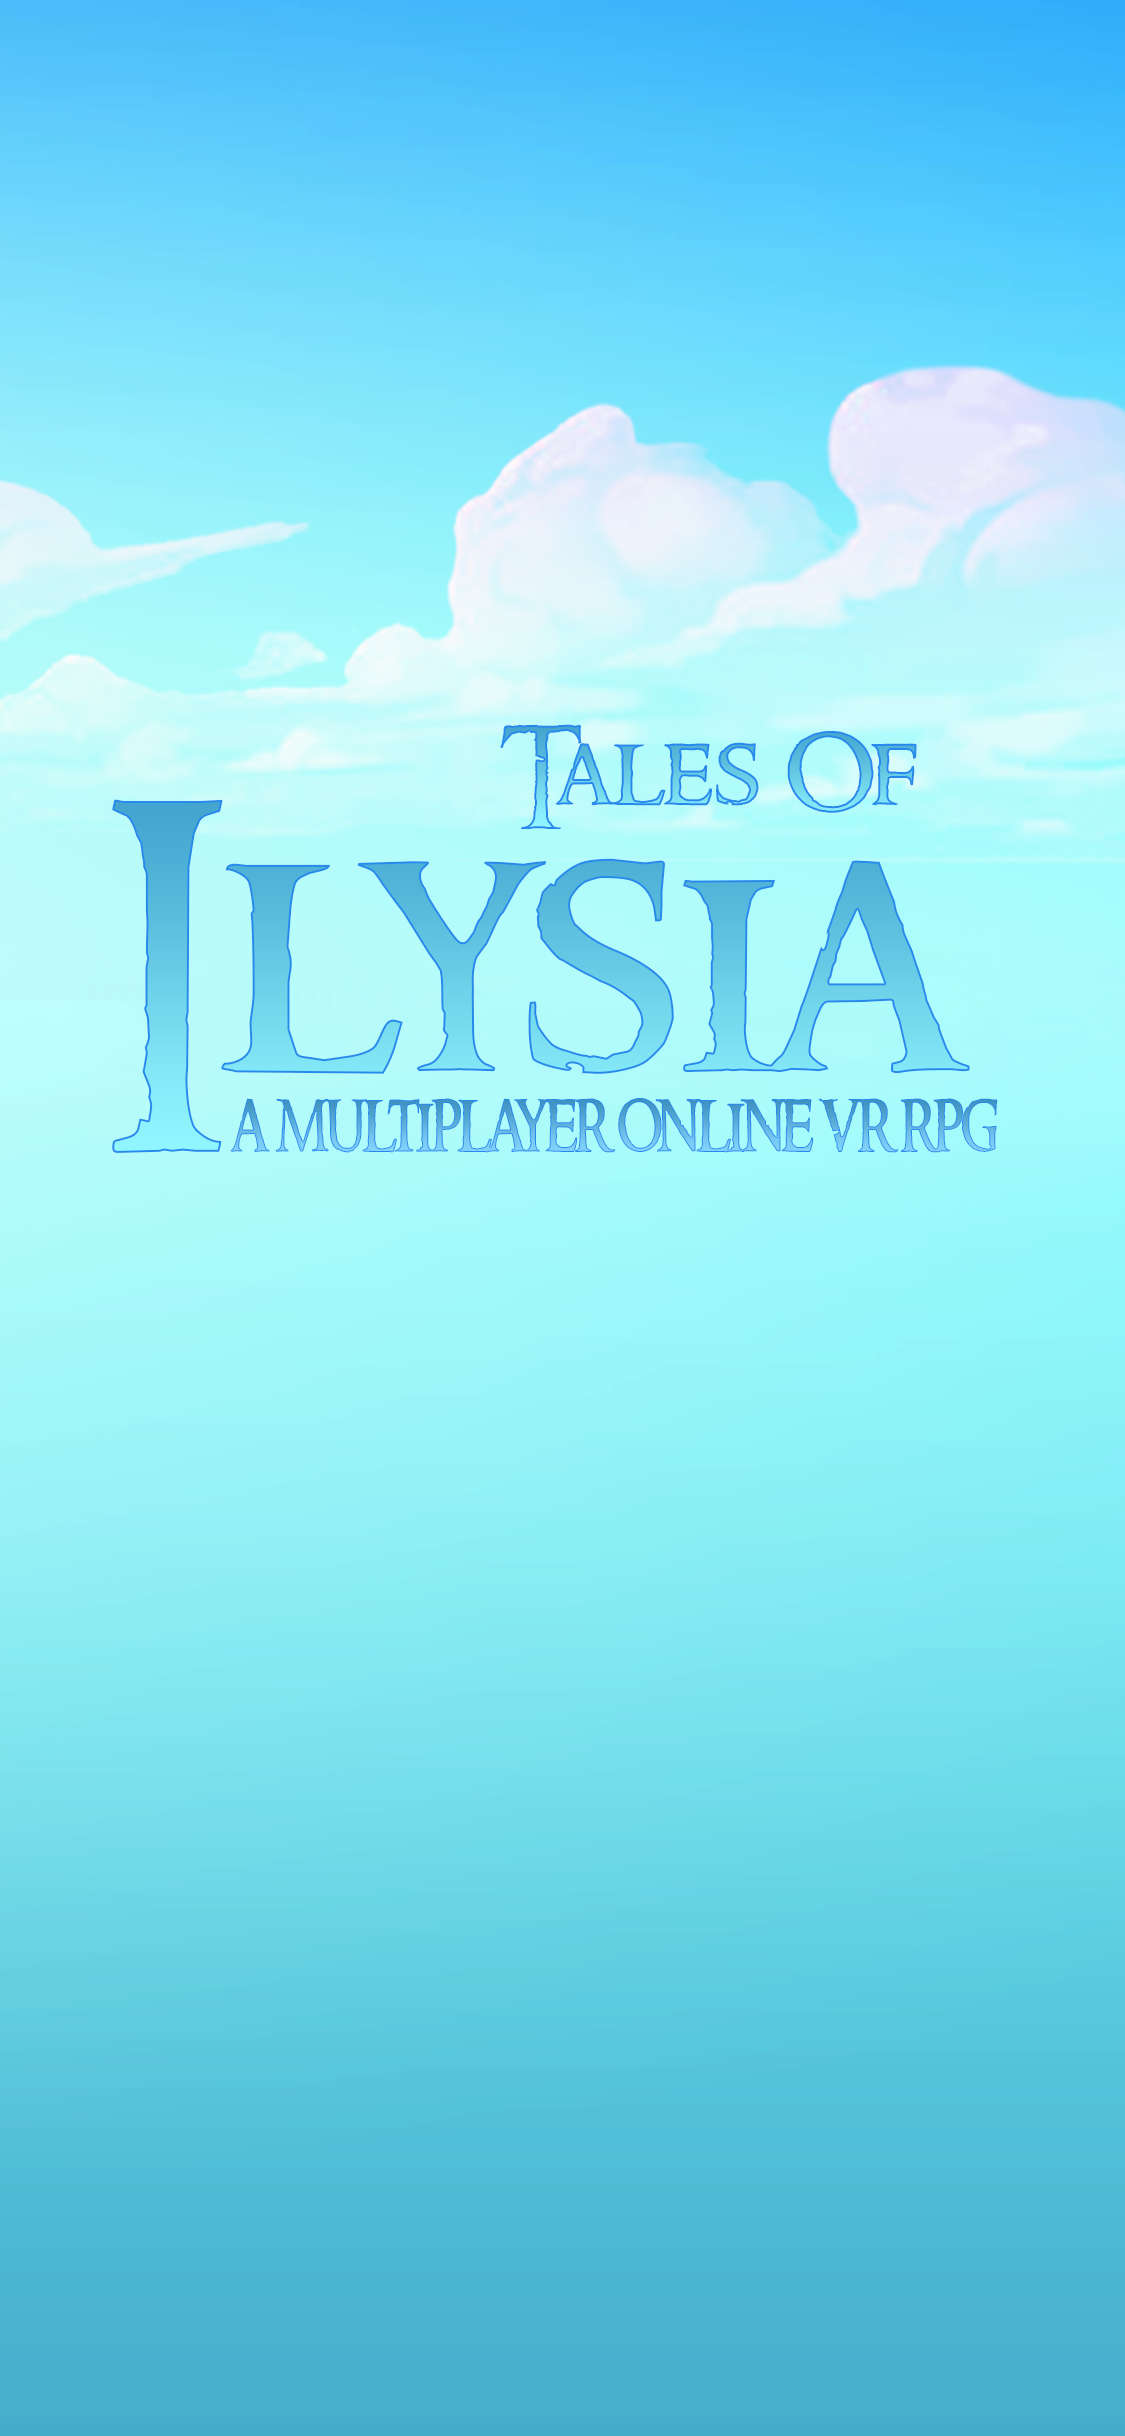 Tales Of Ilysia (2436 iPhoneX).png